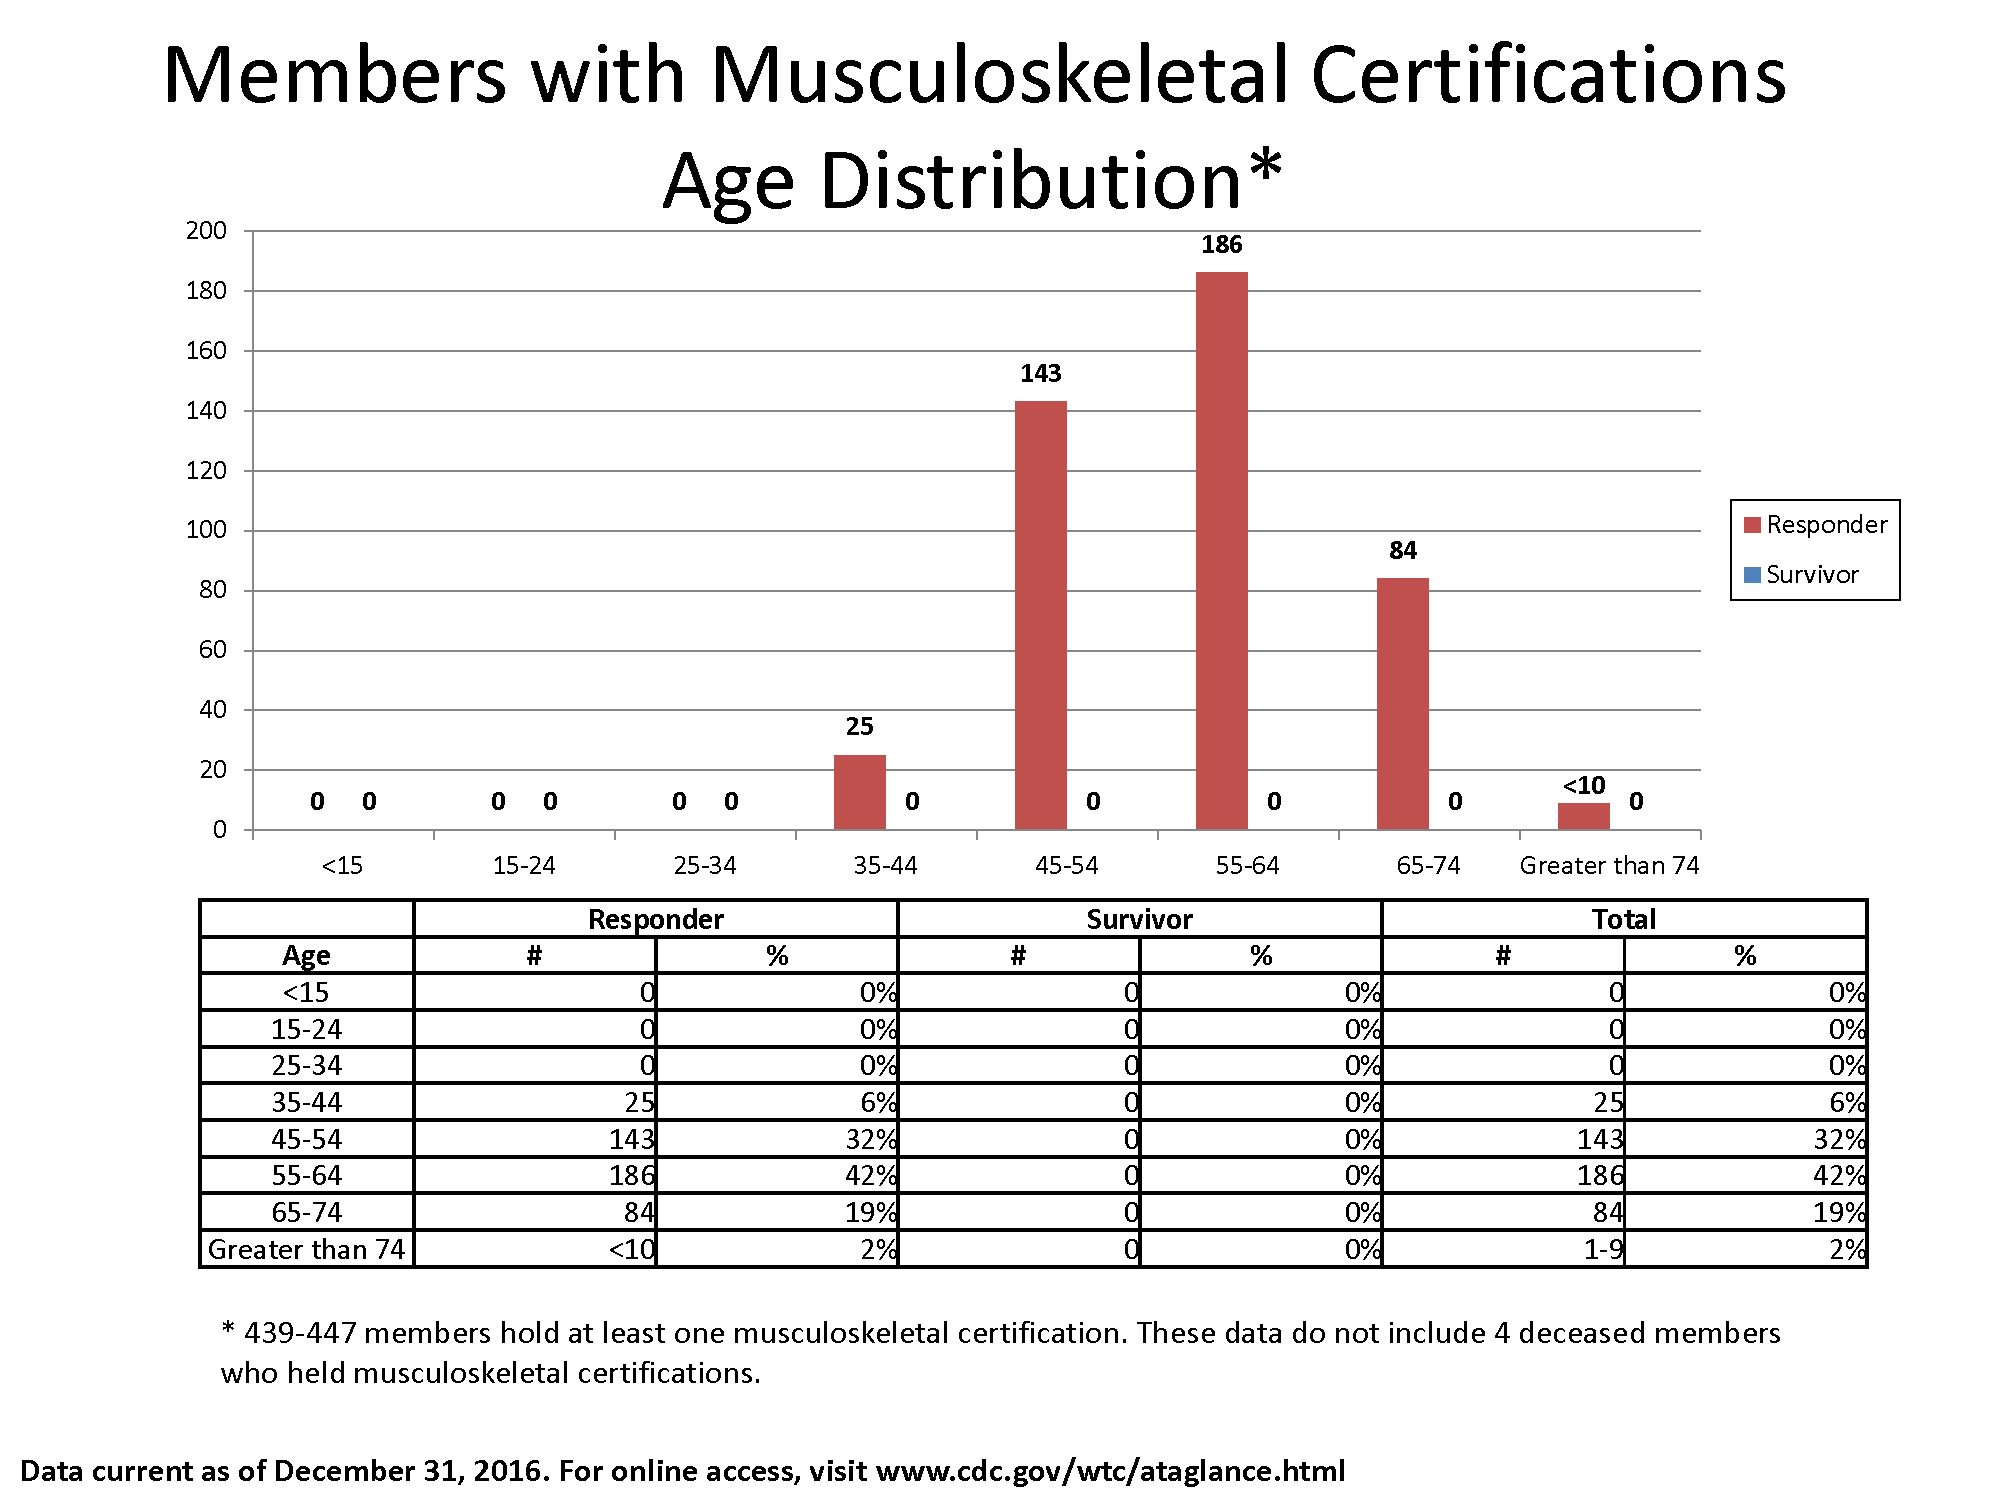 Bar chart of data in the table showing the number of members with musculoskeletal certifications by Responder and Survivor and age bracket.